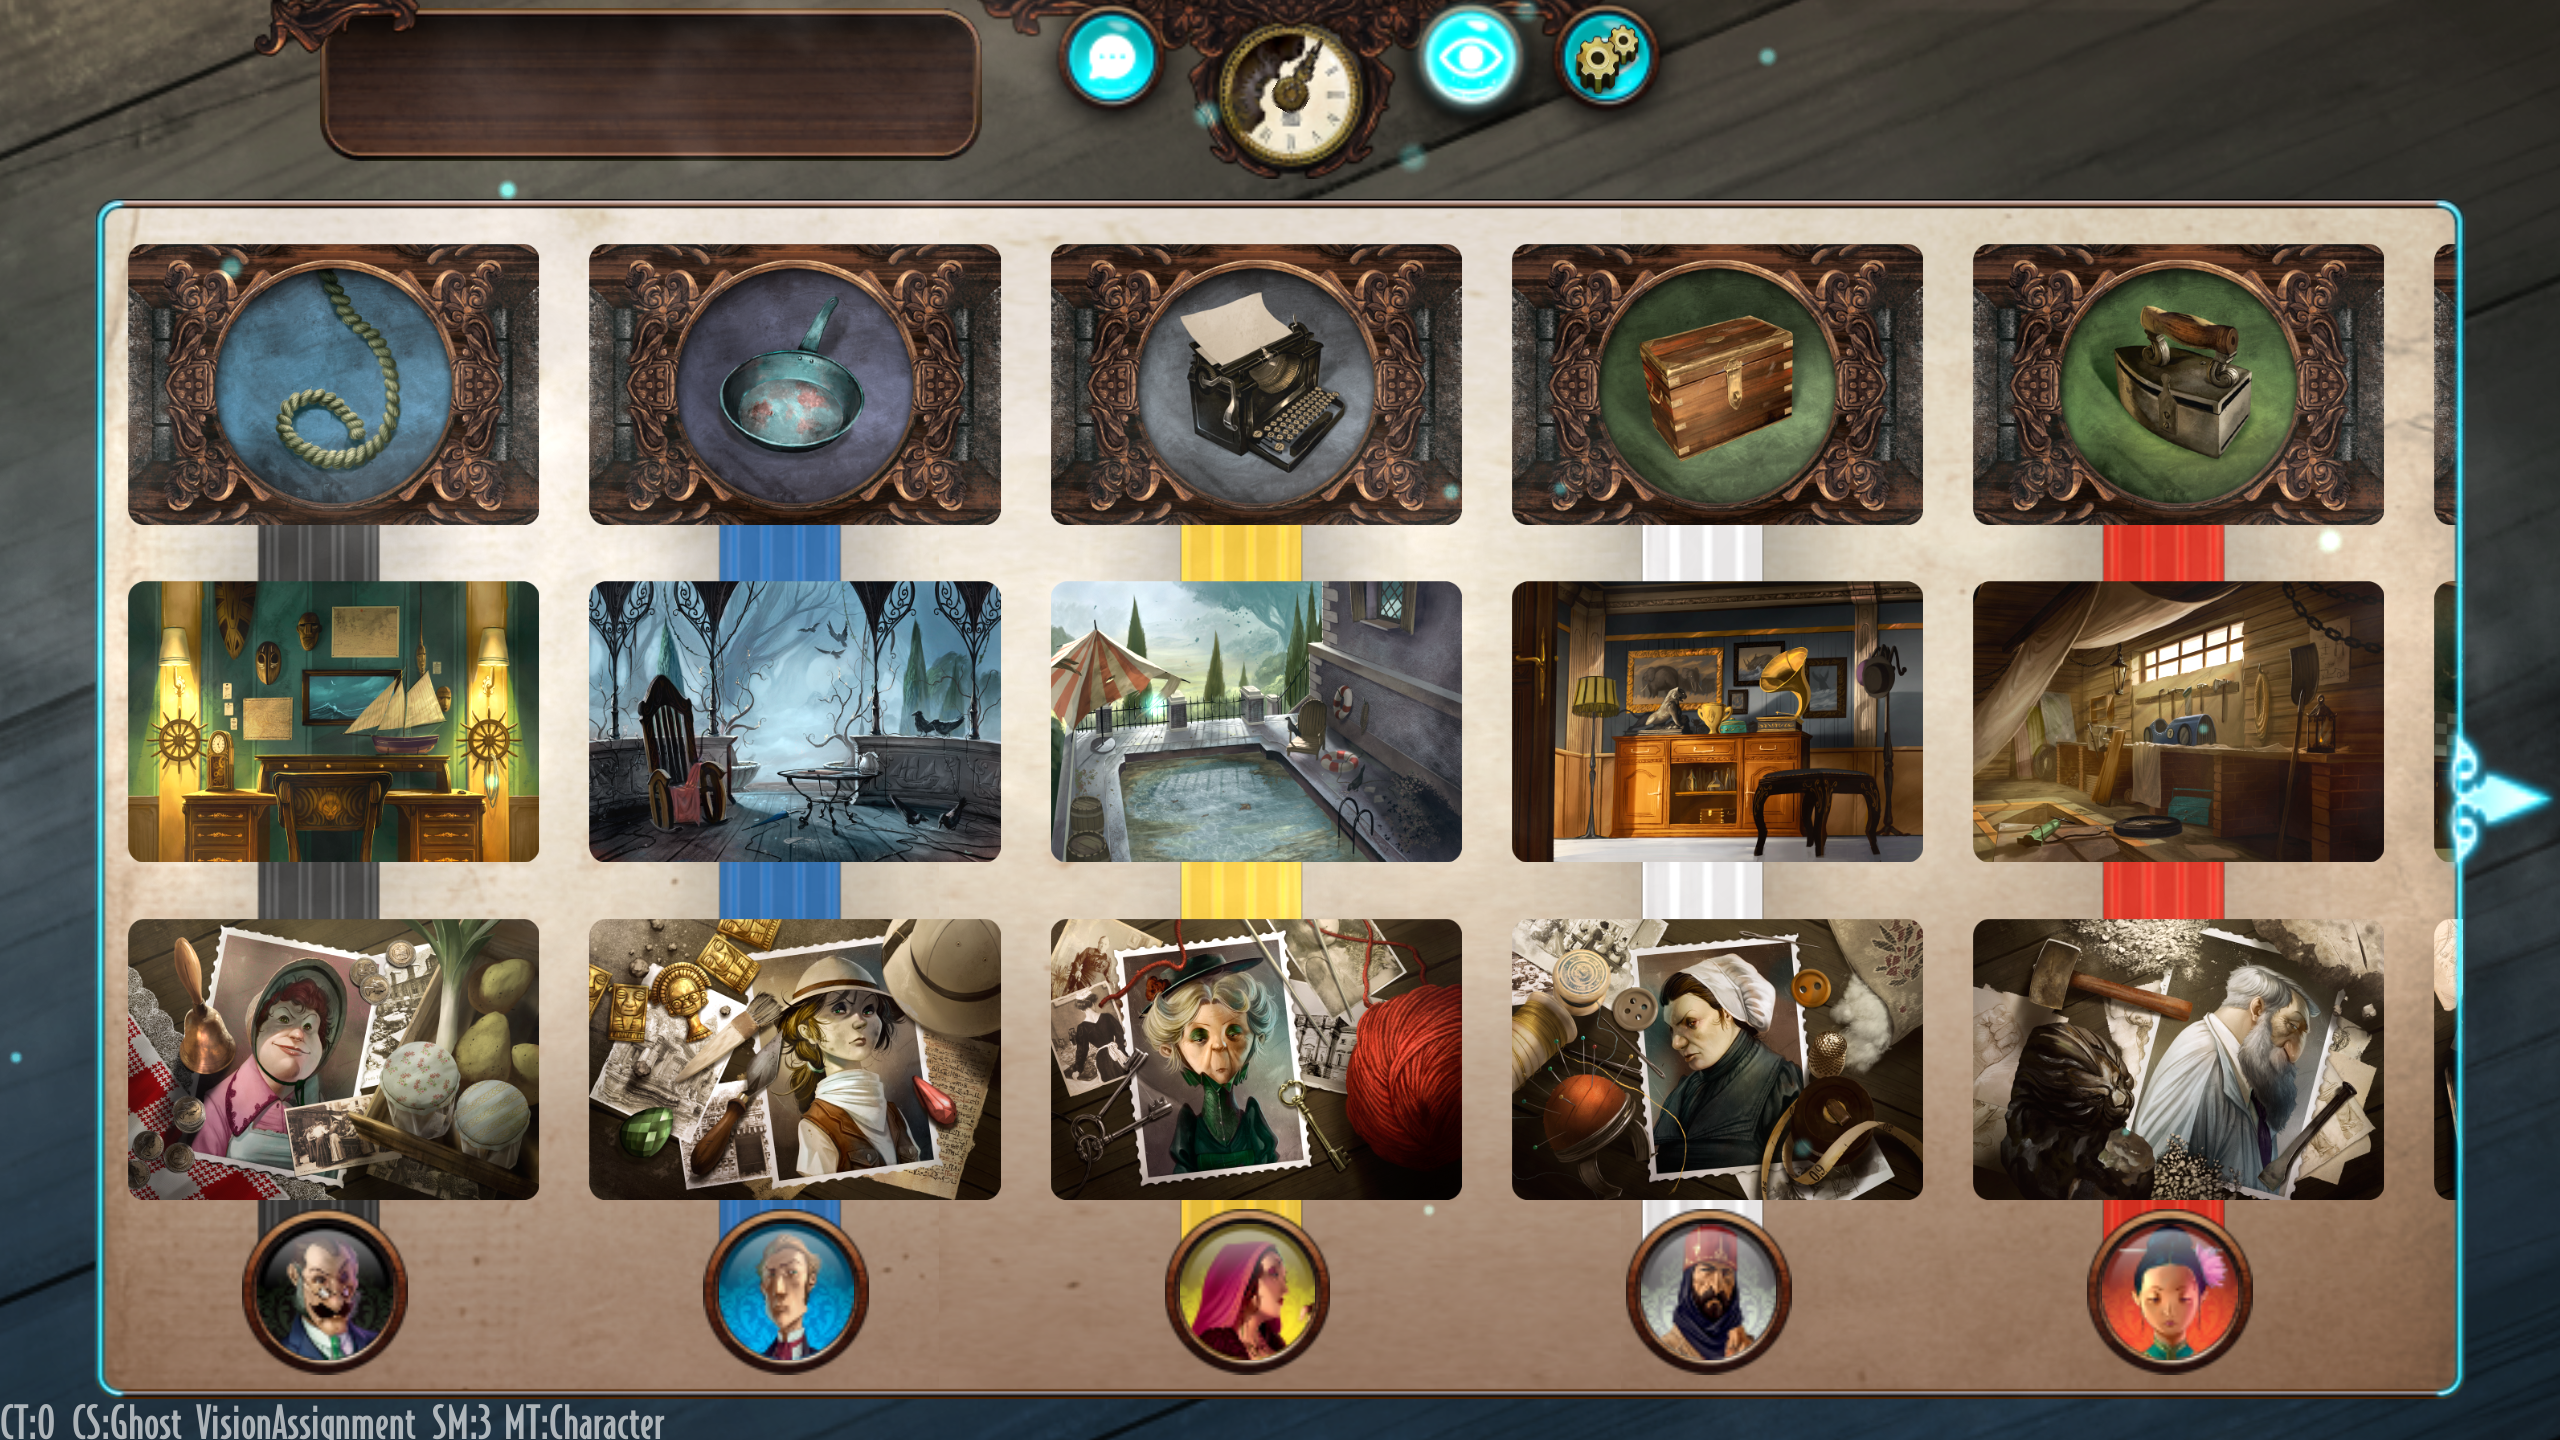 [Update] The digital adaption of the award-winning boardgame Mysterium is out now